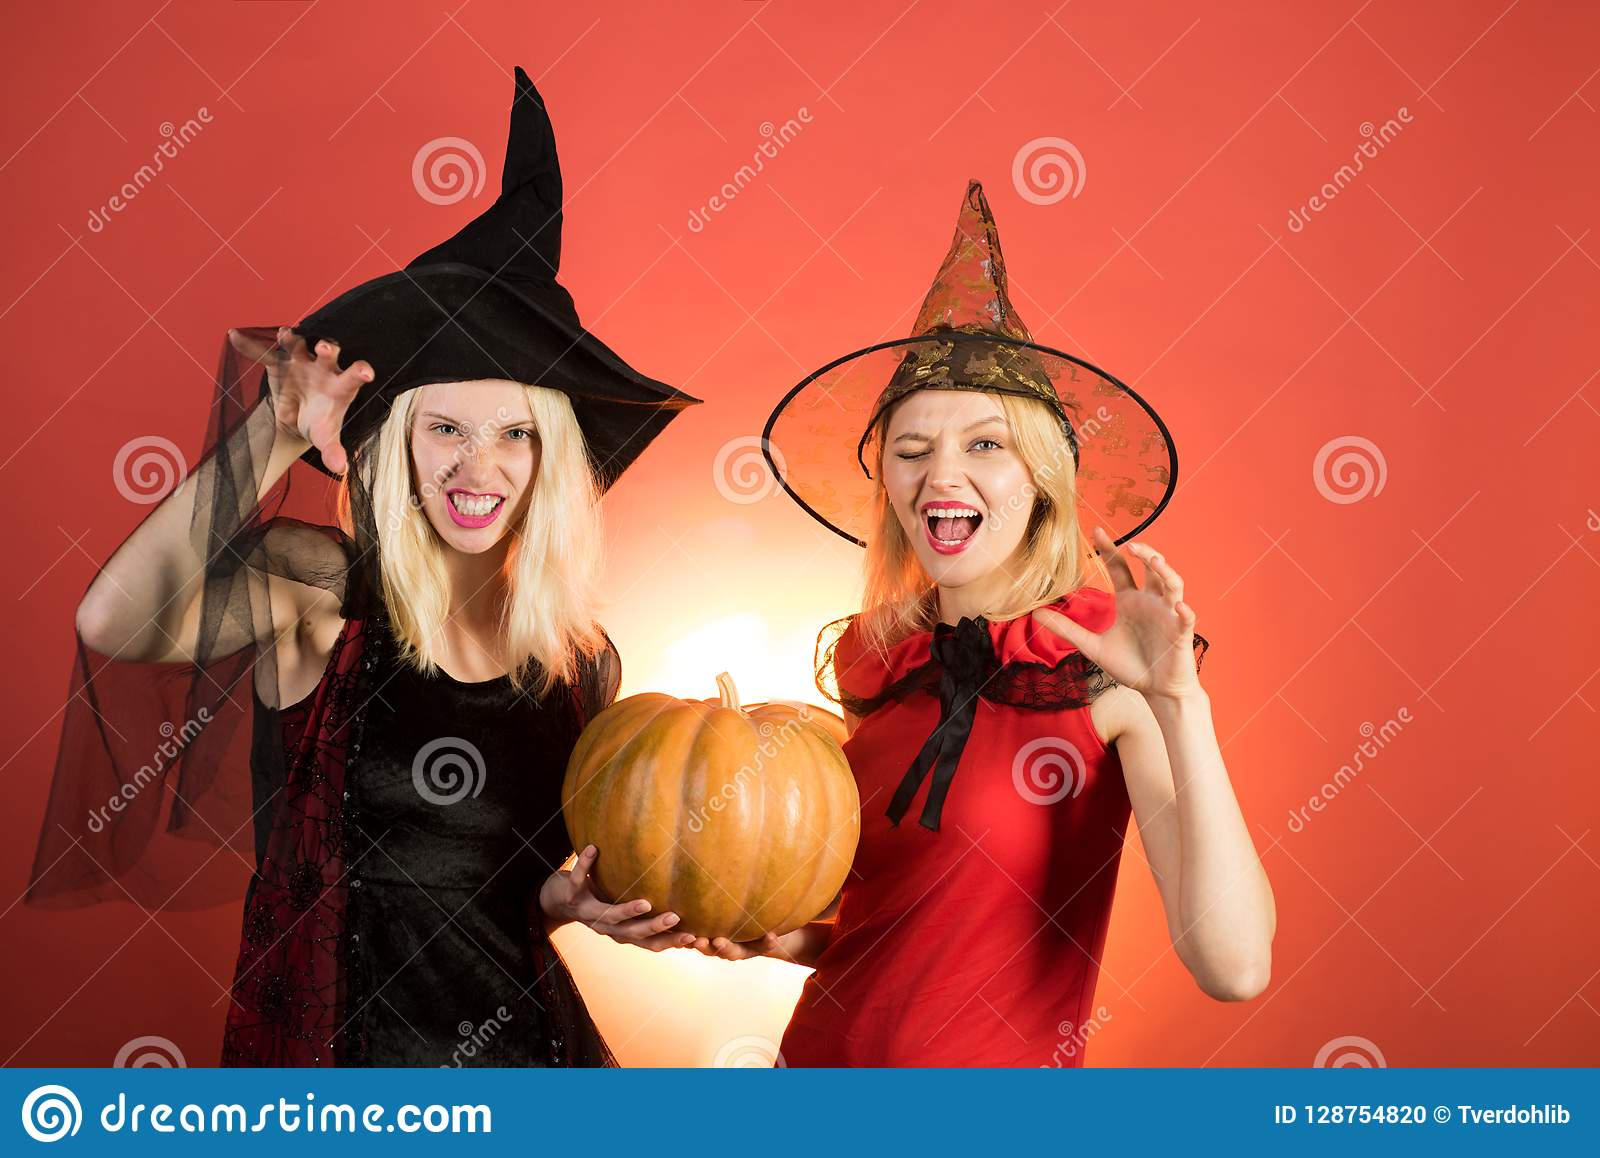 Halloween Costumes For Two Friends.Two Halloween Girls With Pumpkin Best Friends Girls